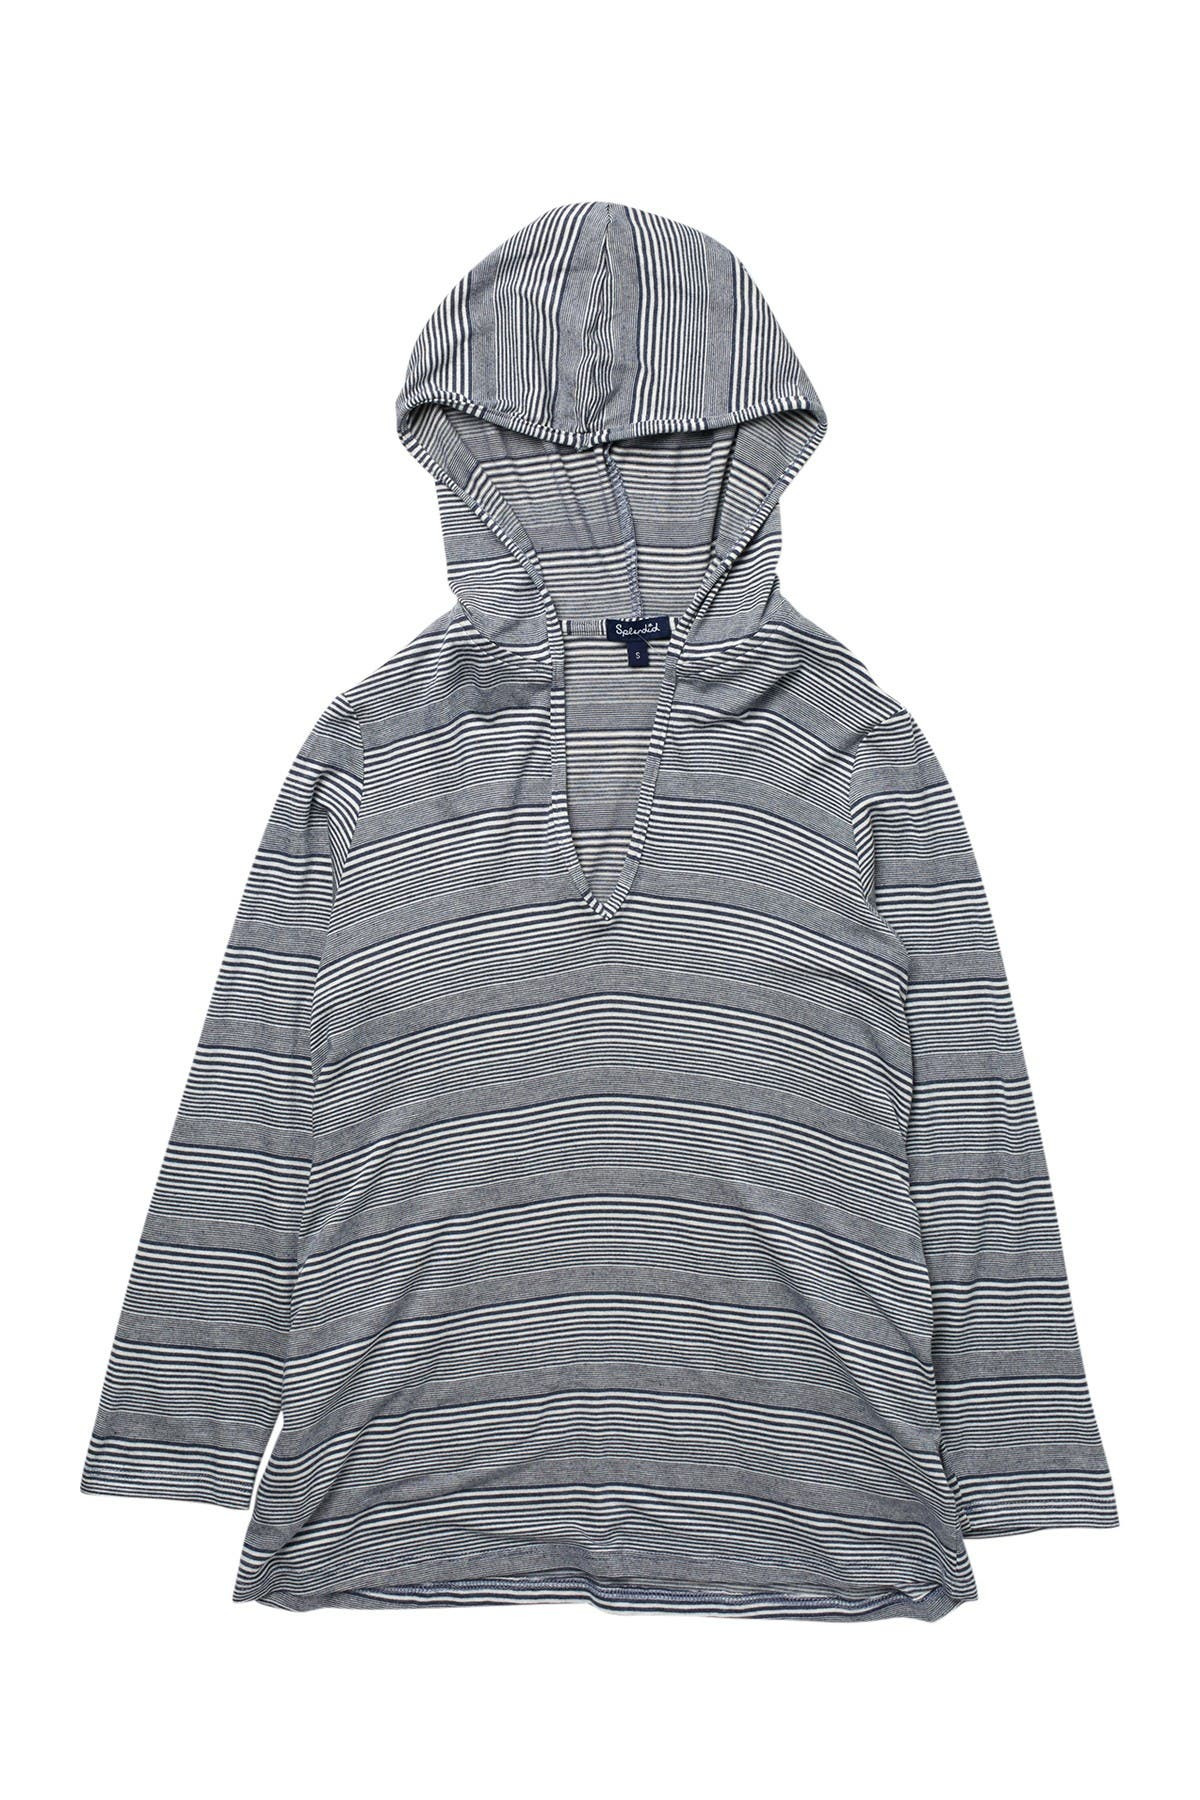 Image of Splendid Able Staple Striped Cover-Up Tunic Hoodie